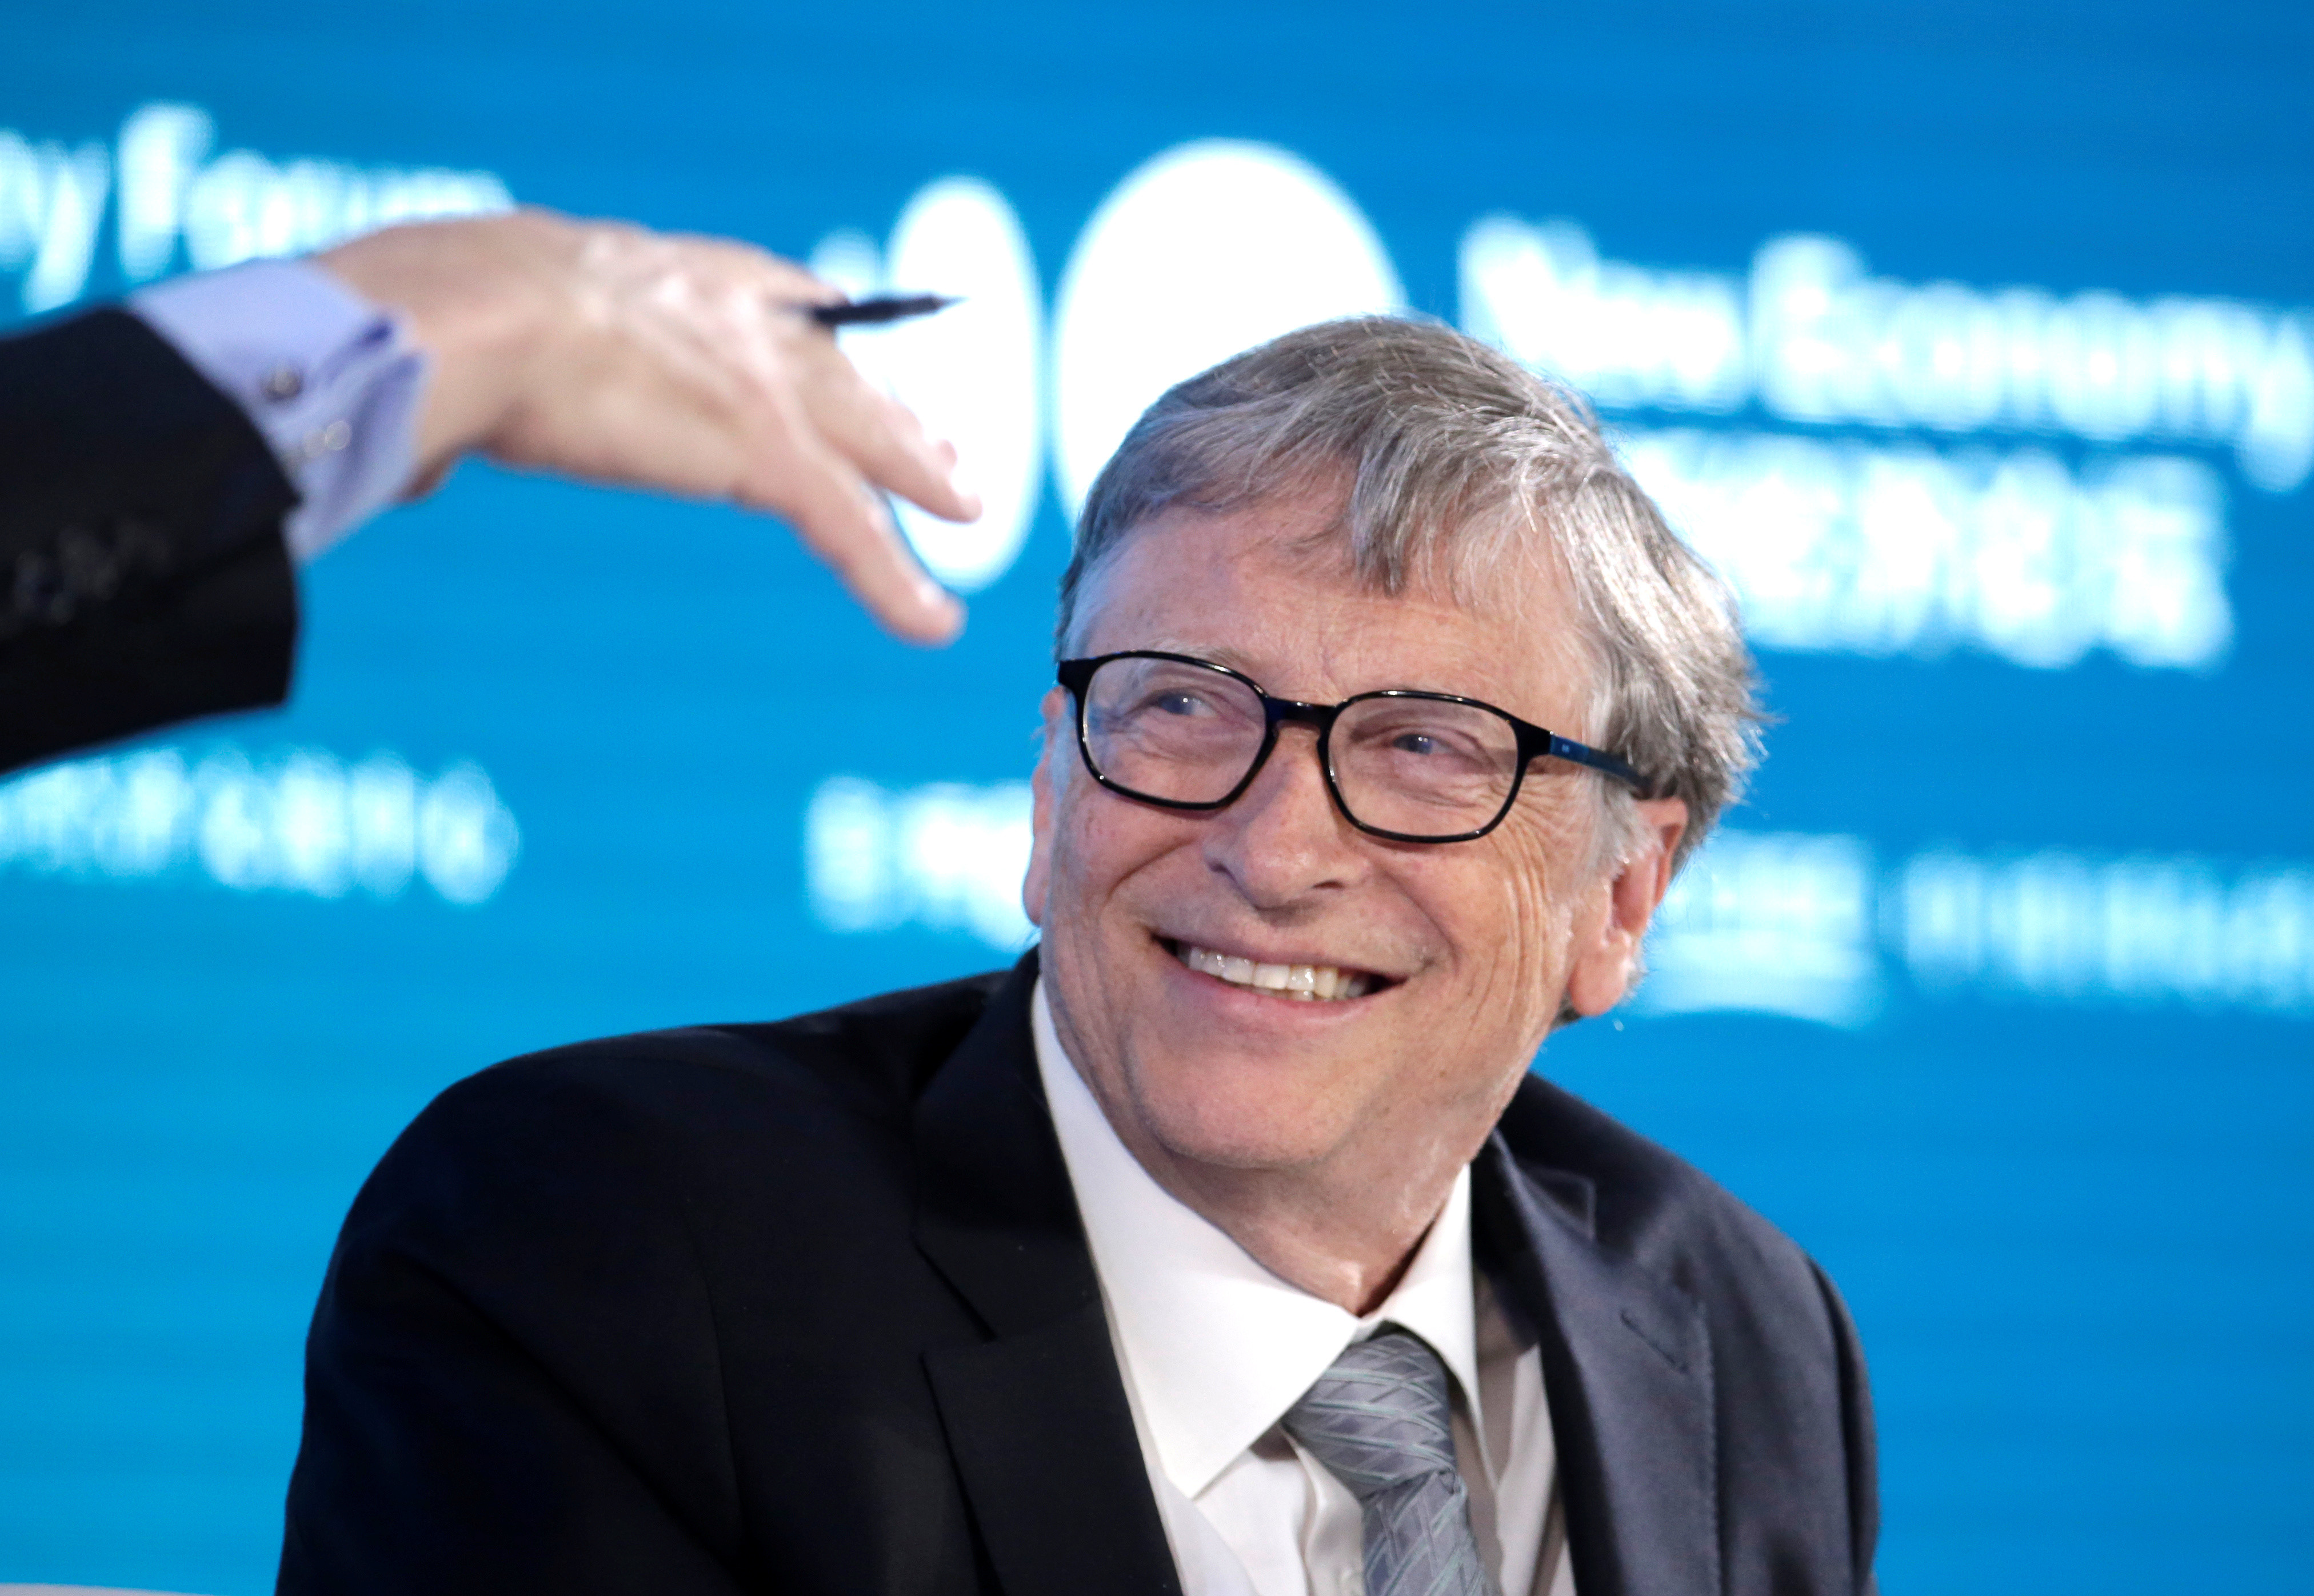 Bill Gates, Co-Chair of Bill & Melinda Gates Foundation, attends a conversation at the 2019 New Economy Forum in Beijing, China November 21, 2019. REUTERS/Jason Lee - RC2MFD9FAT7I